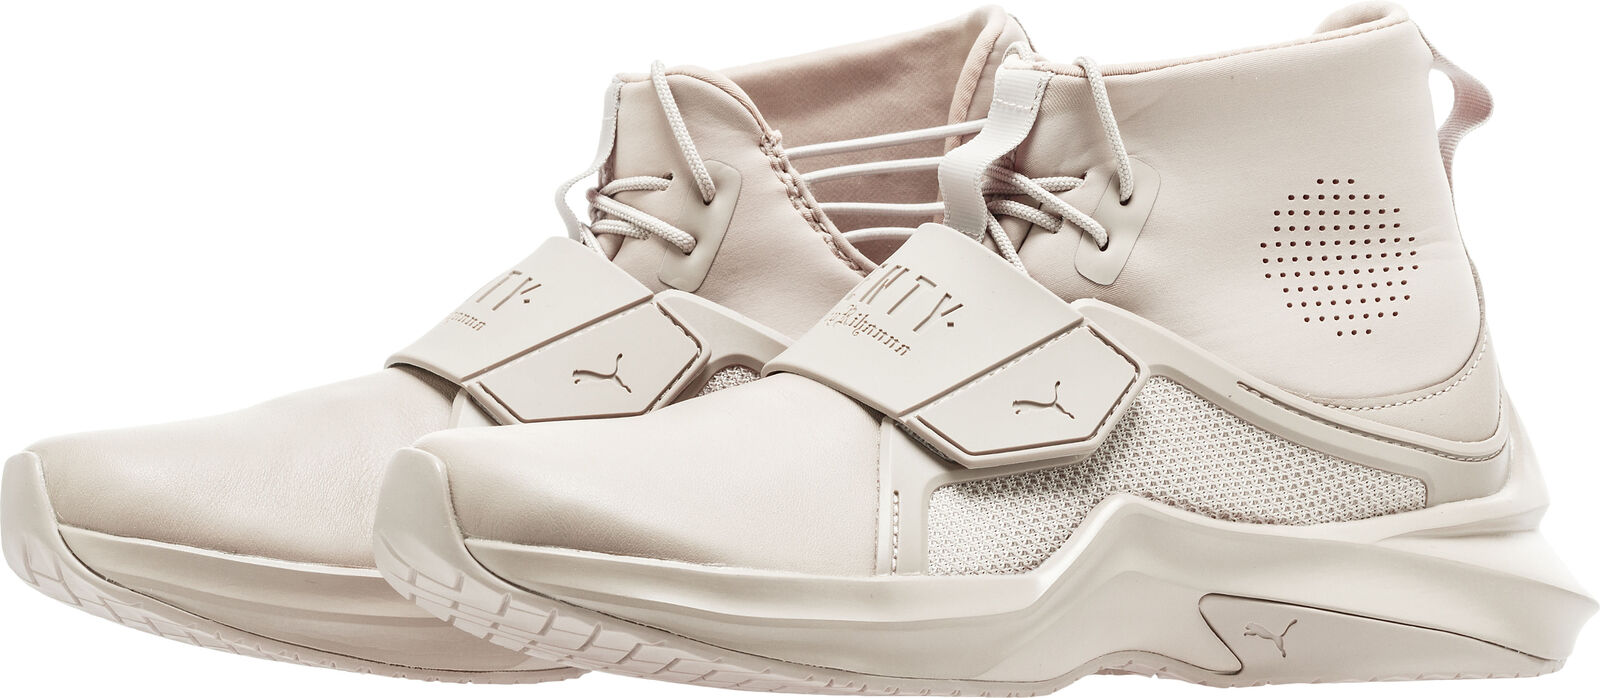 PUMA Trainer by Fenty Rihanna Hi Top Sneaker Comfortable Wild casual shoes